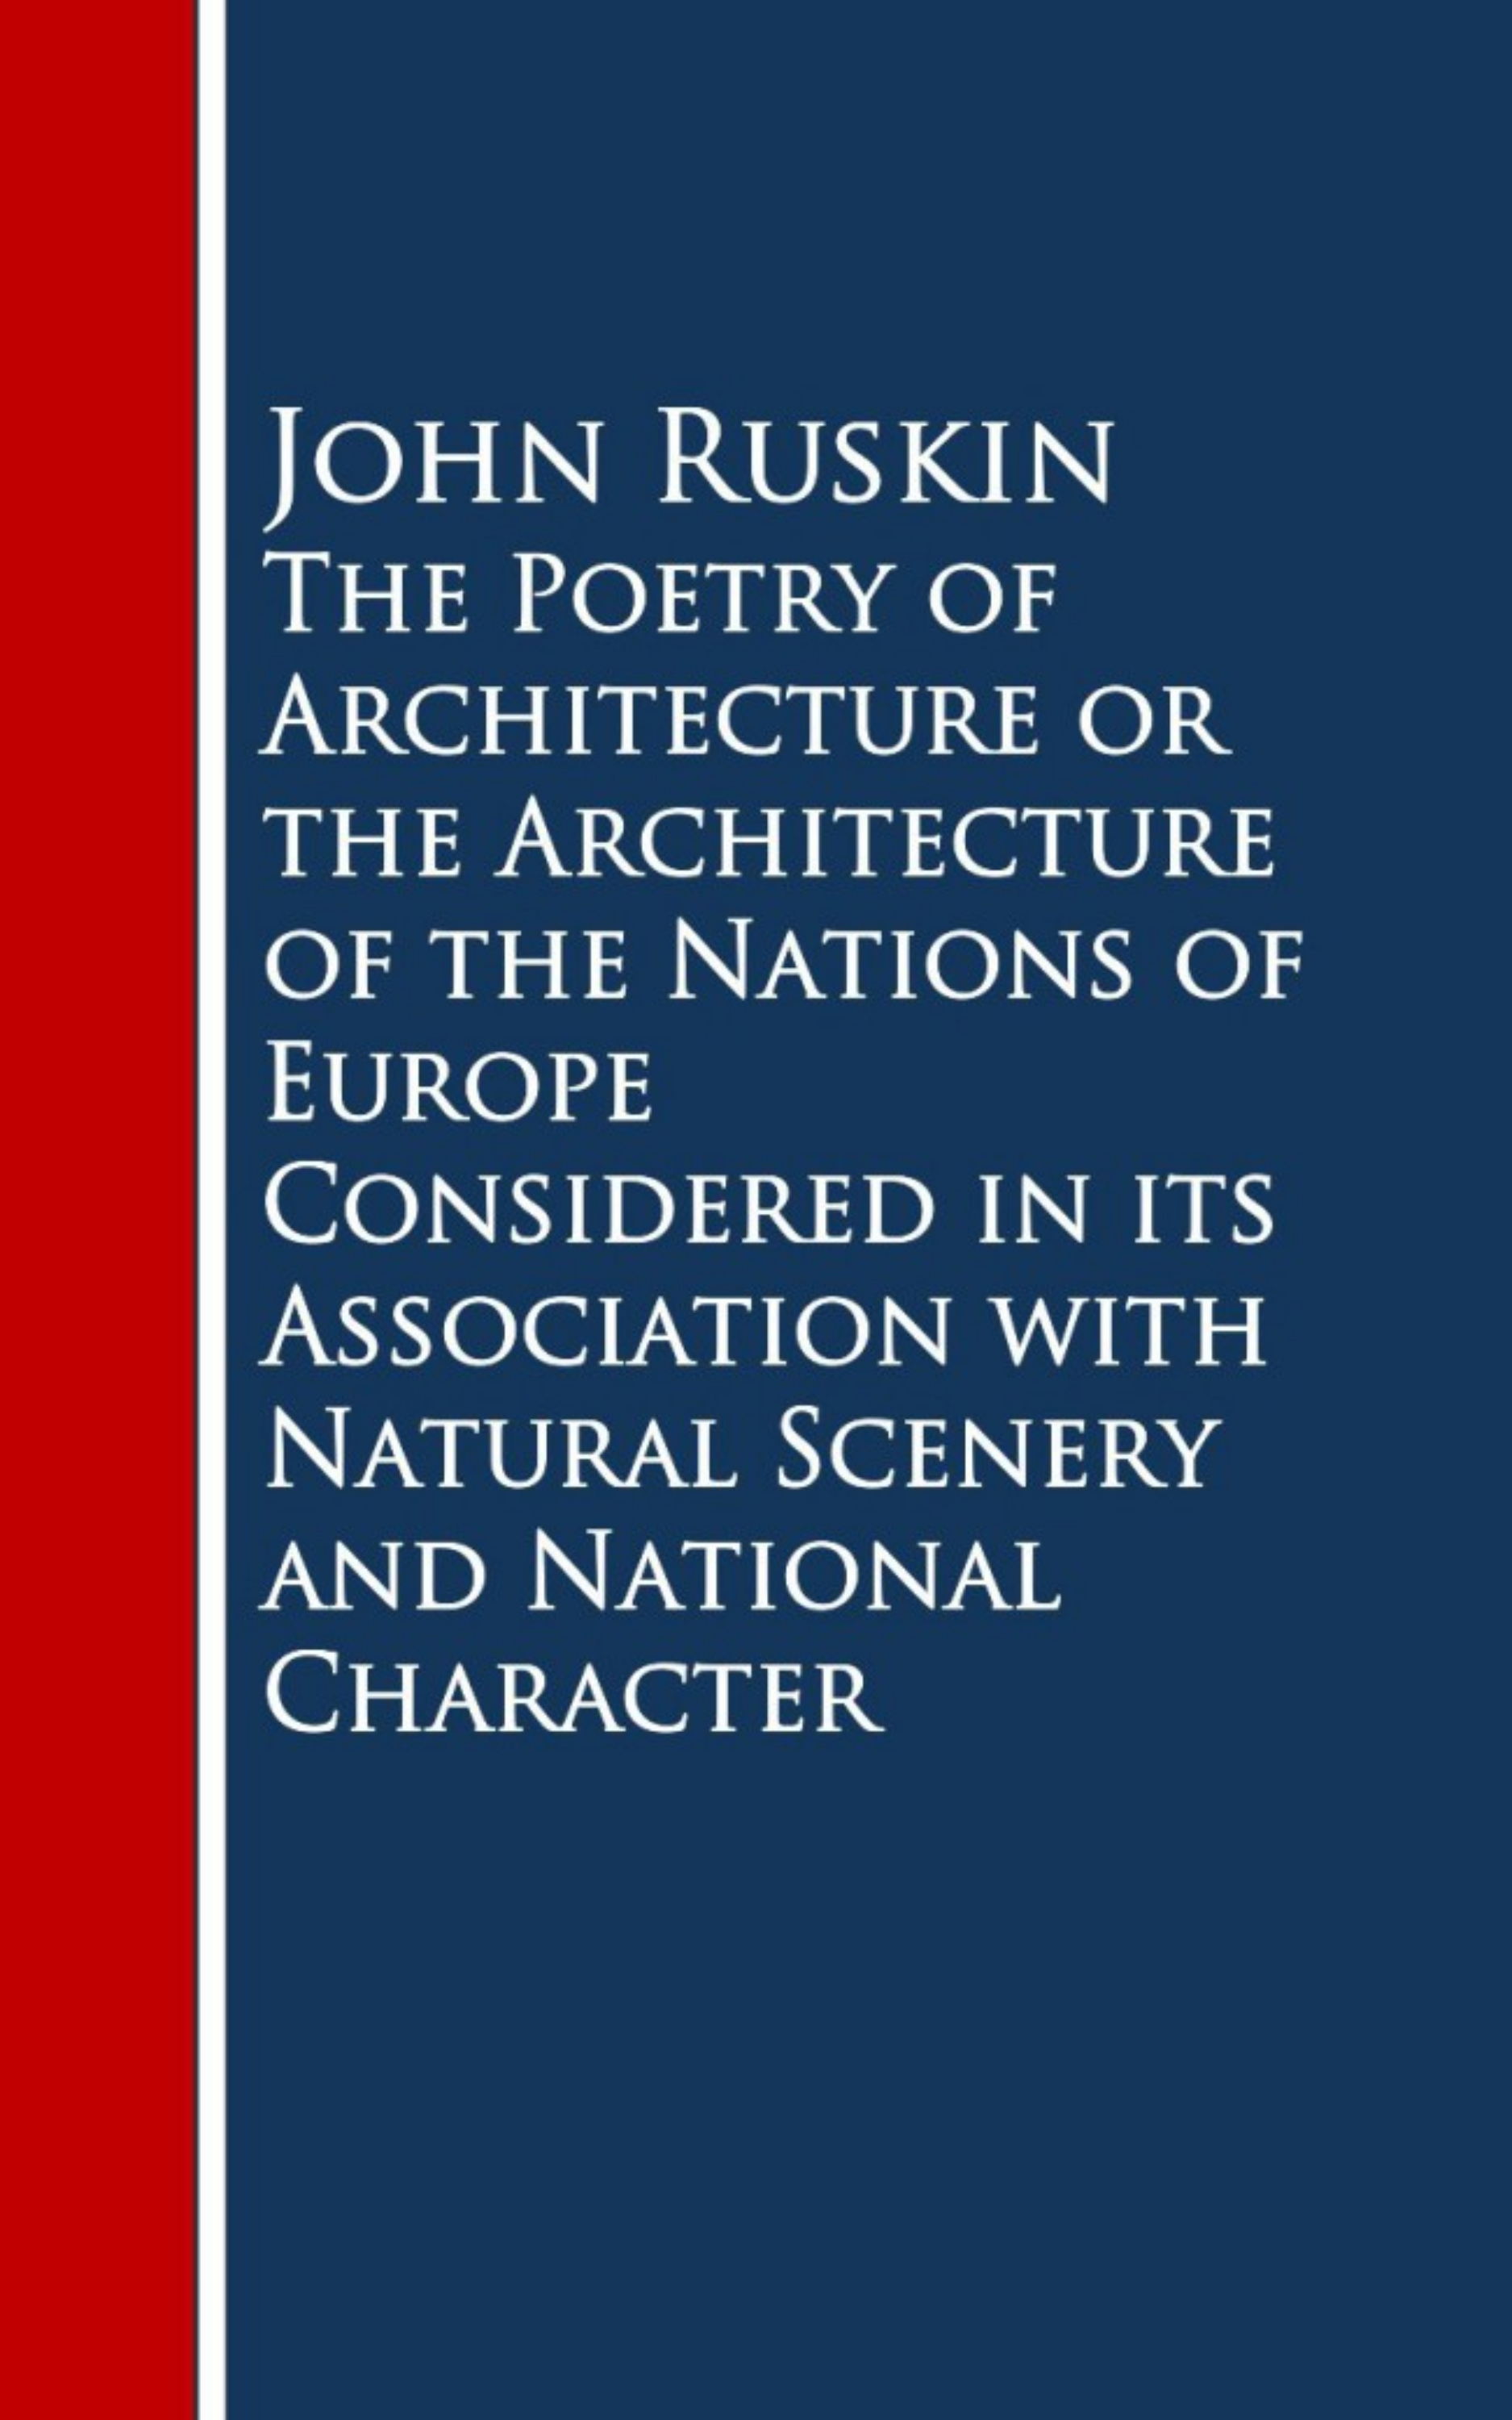 John Ruskin Ruskin The Poetry of Architecture or the Architecture ofural Scenery and National Character ruskin john the stones of venice volume 1 of 3